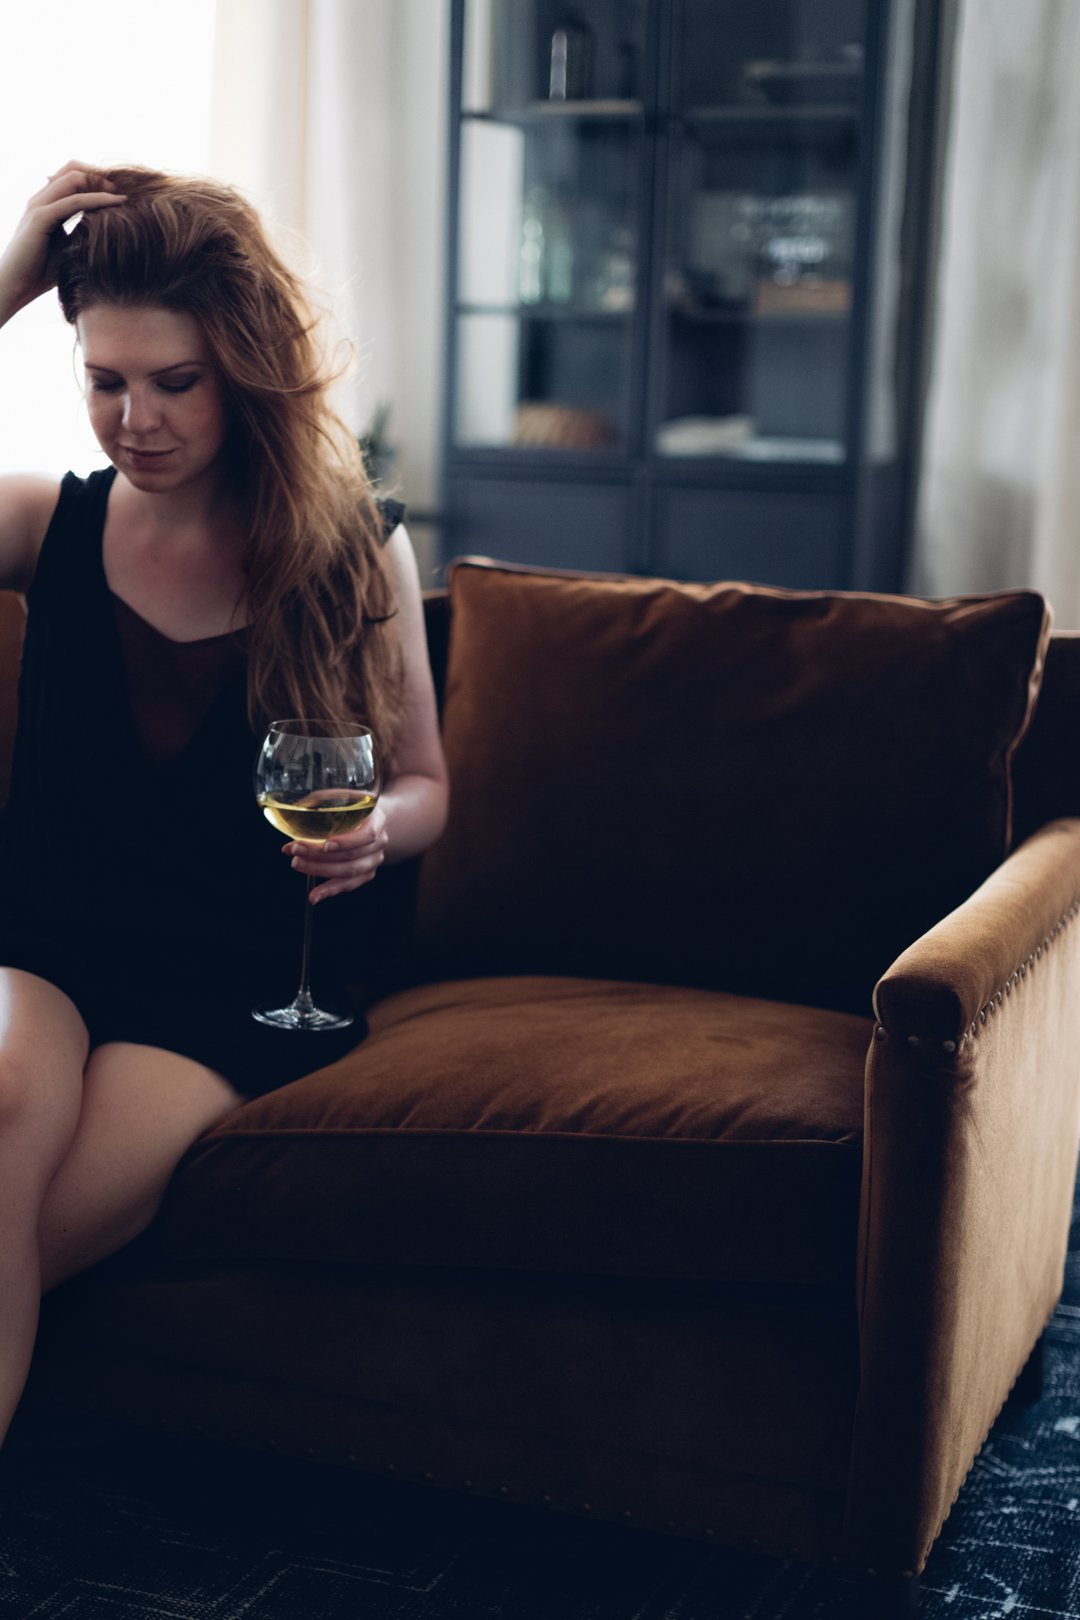 Woman sitting on sofa with glass of white wine